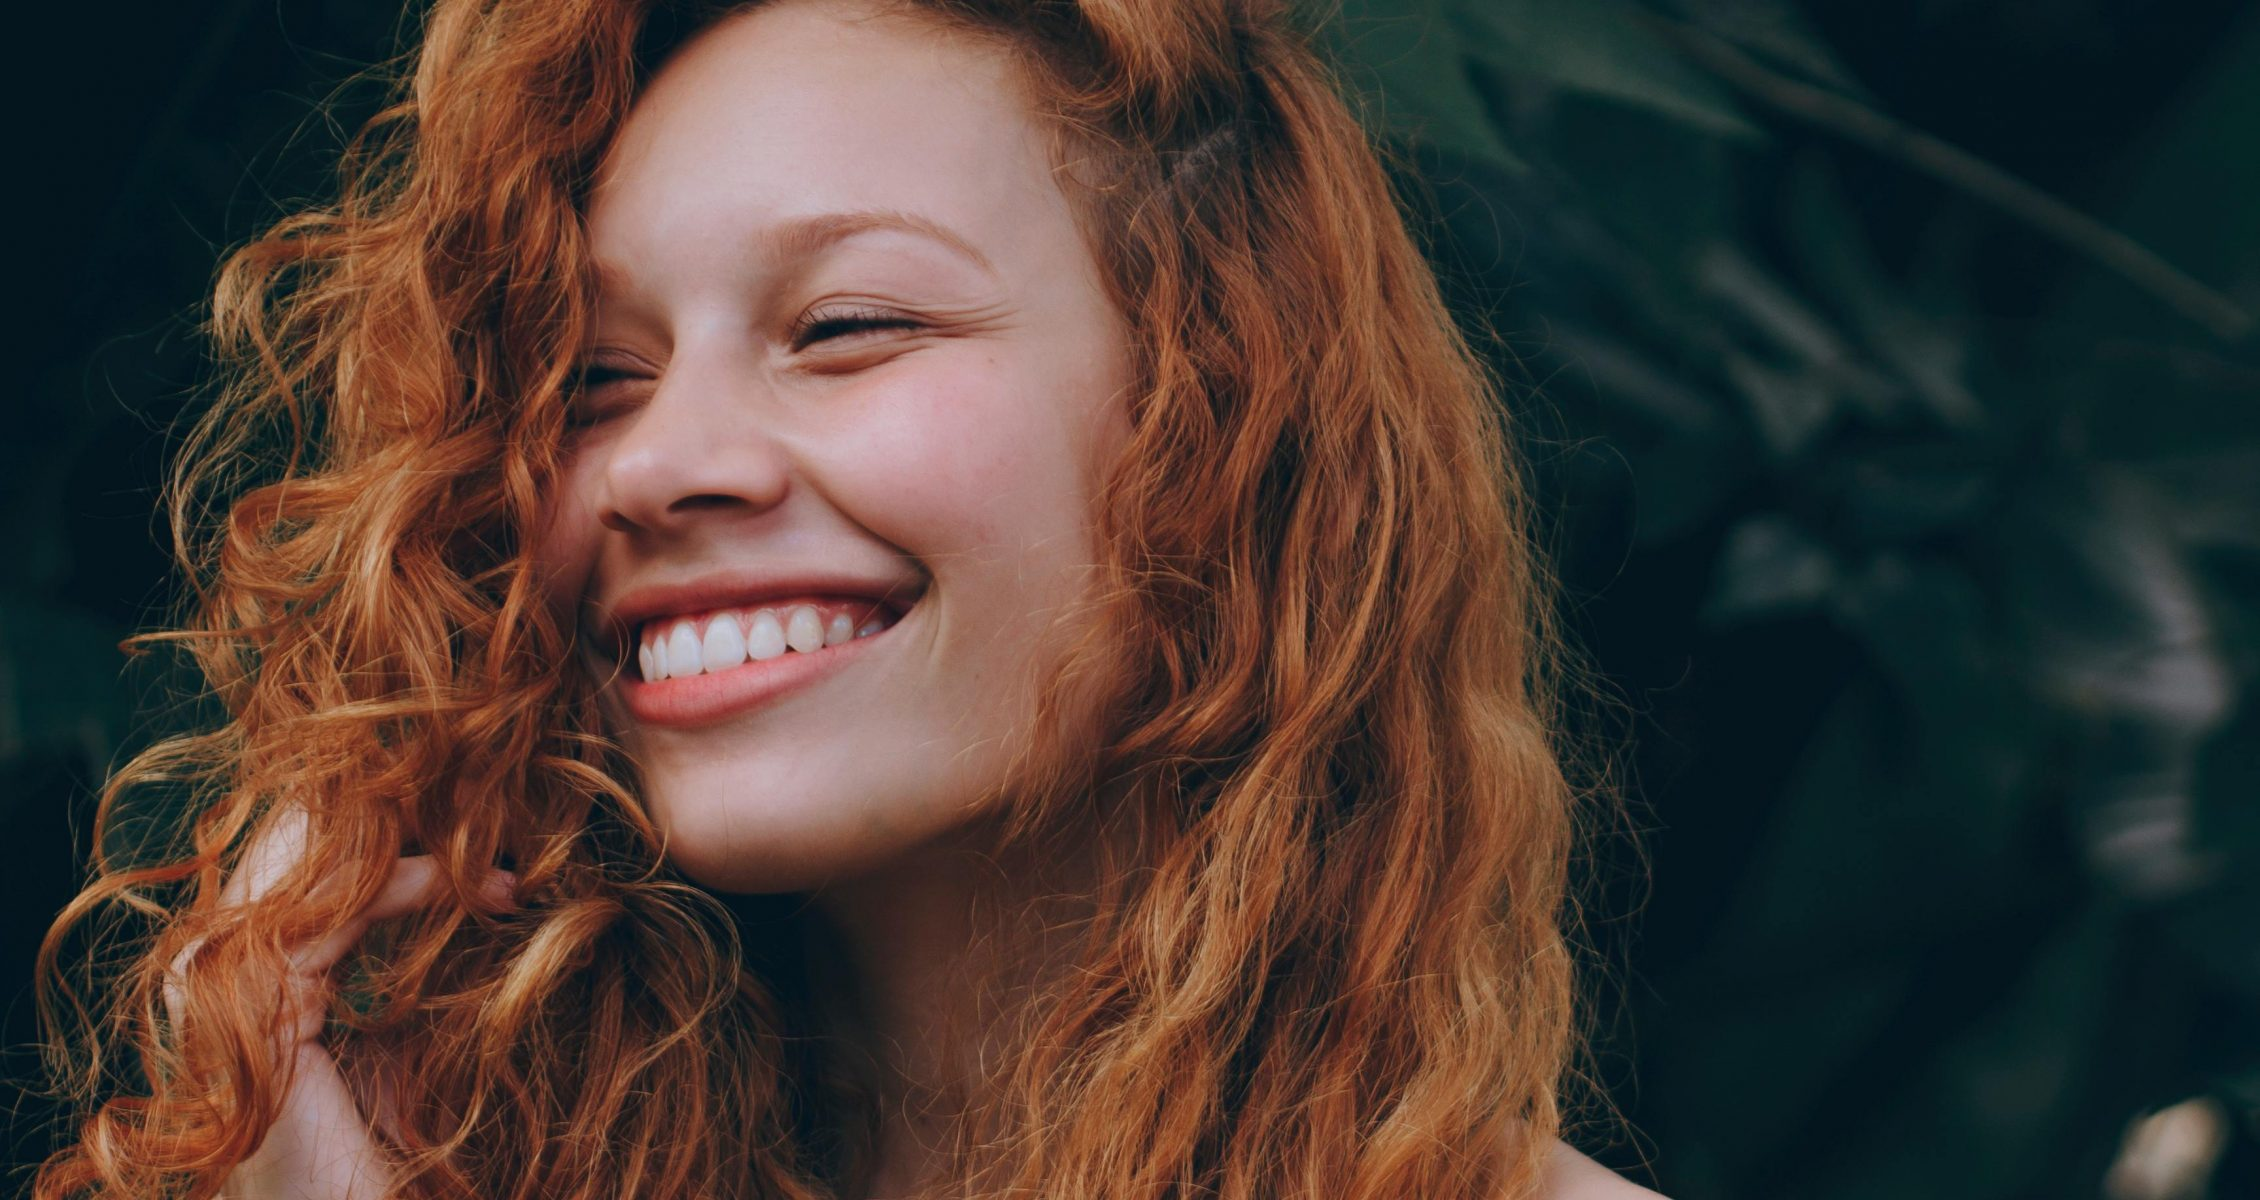 Girl with curly, red hair smiling against greenery